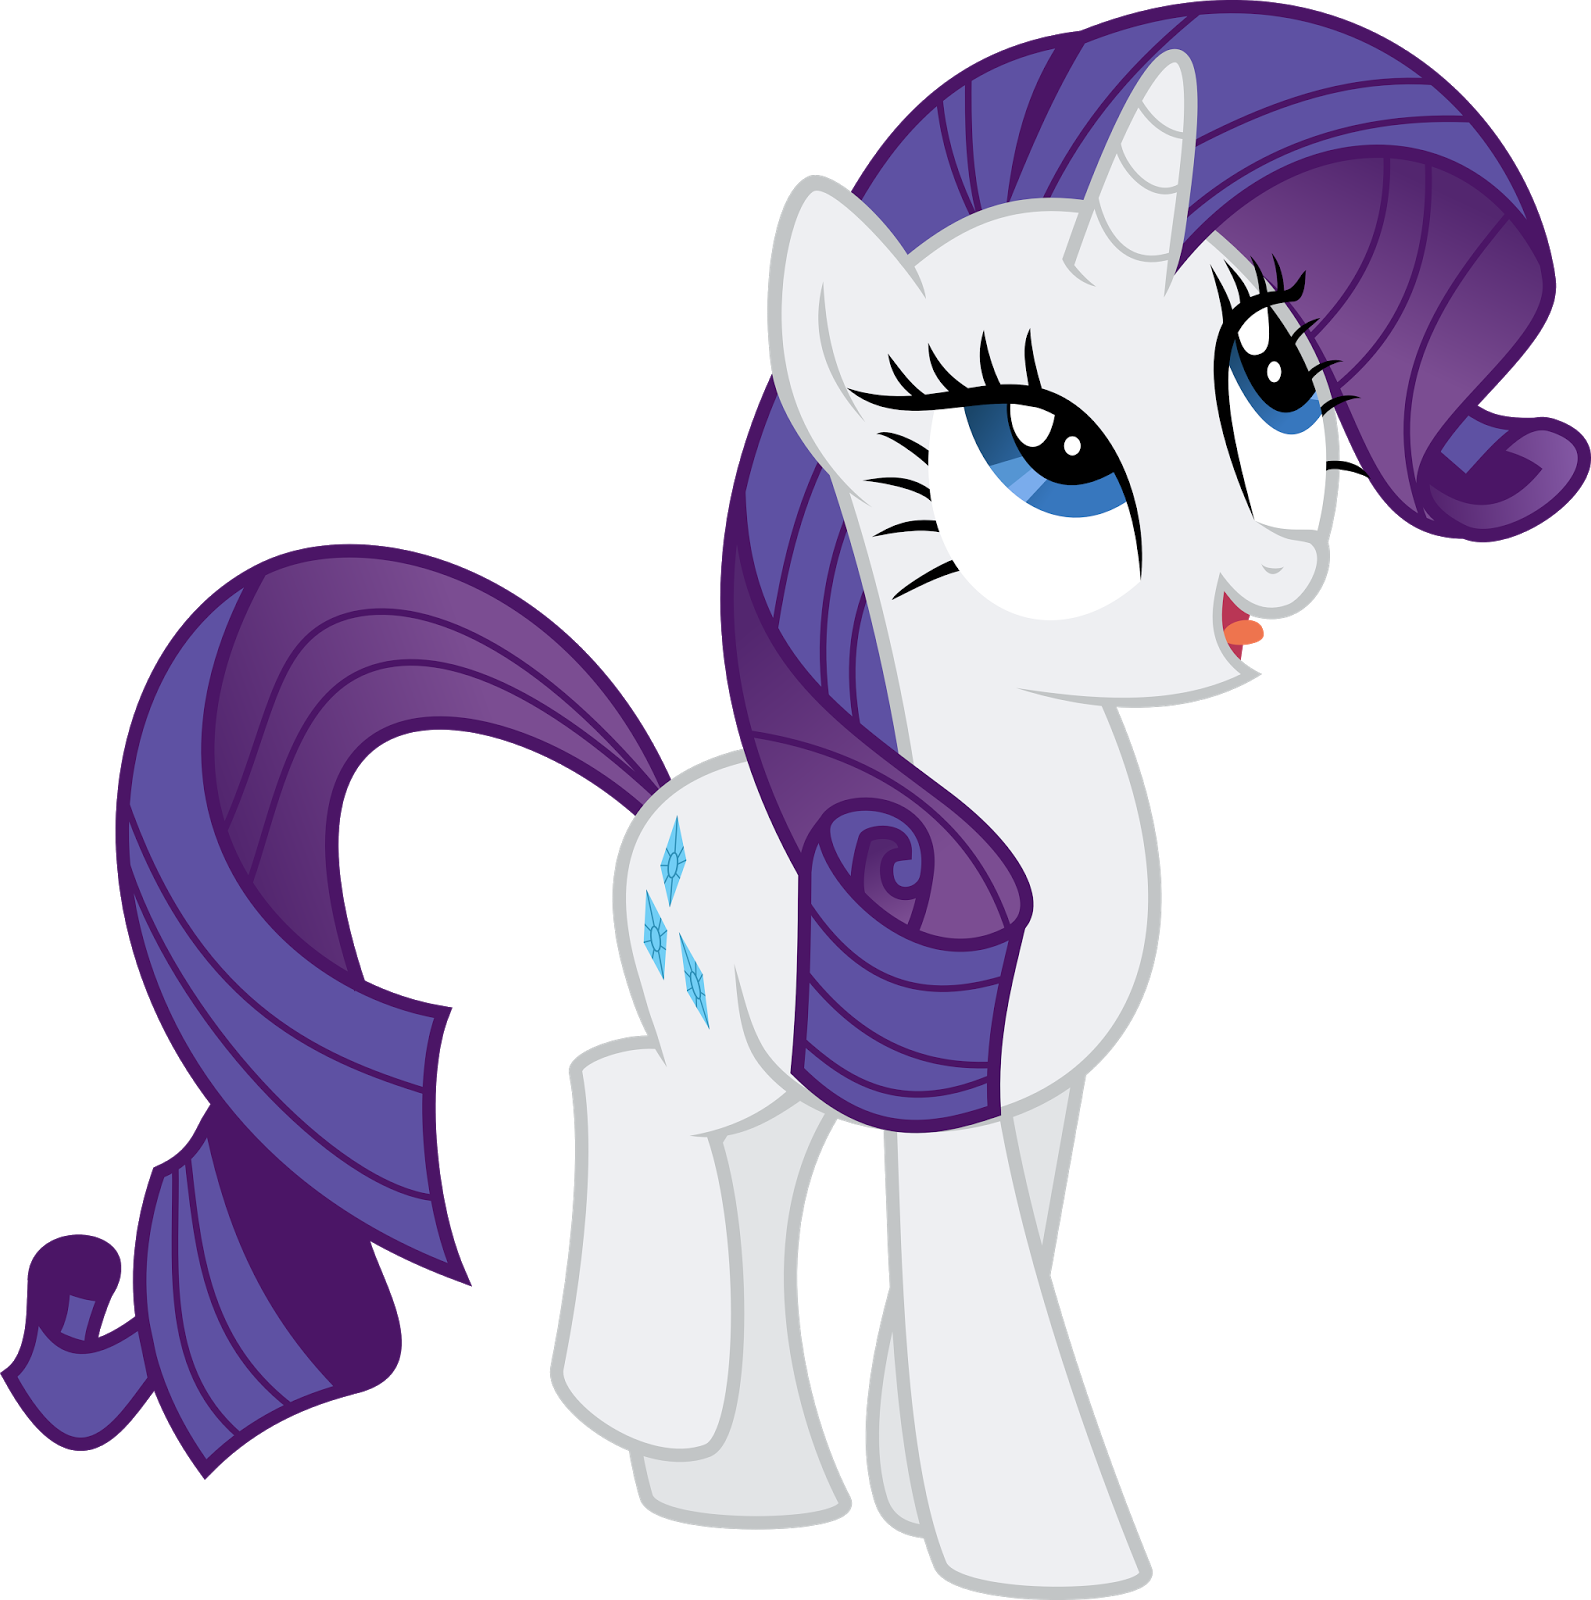 My Little Pony Pictures Free Download Wallpaper For Mobile Phones